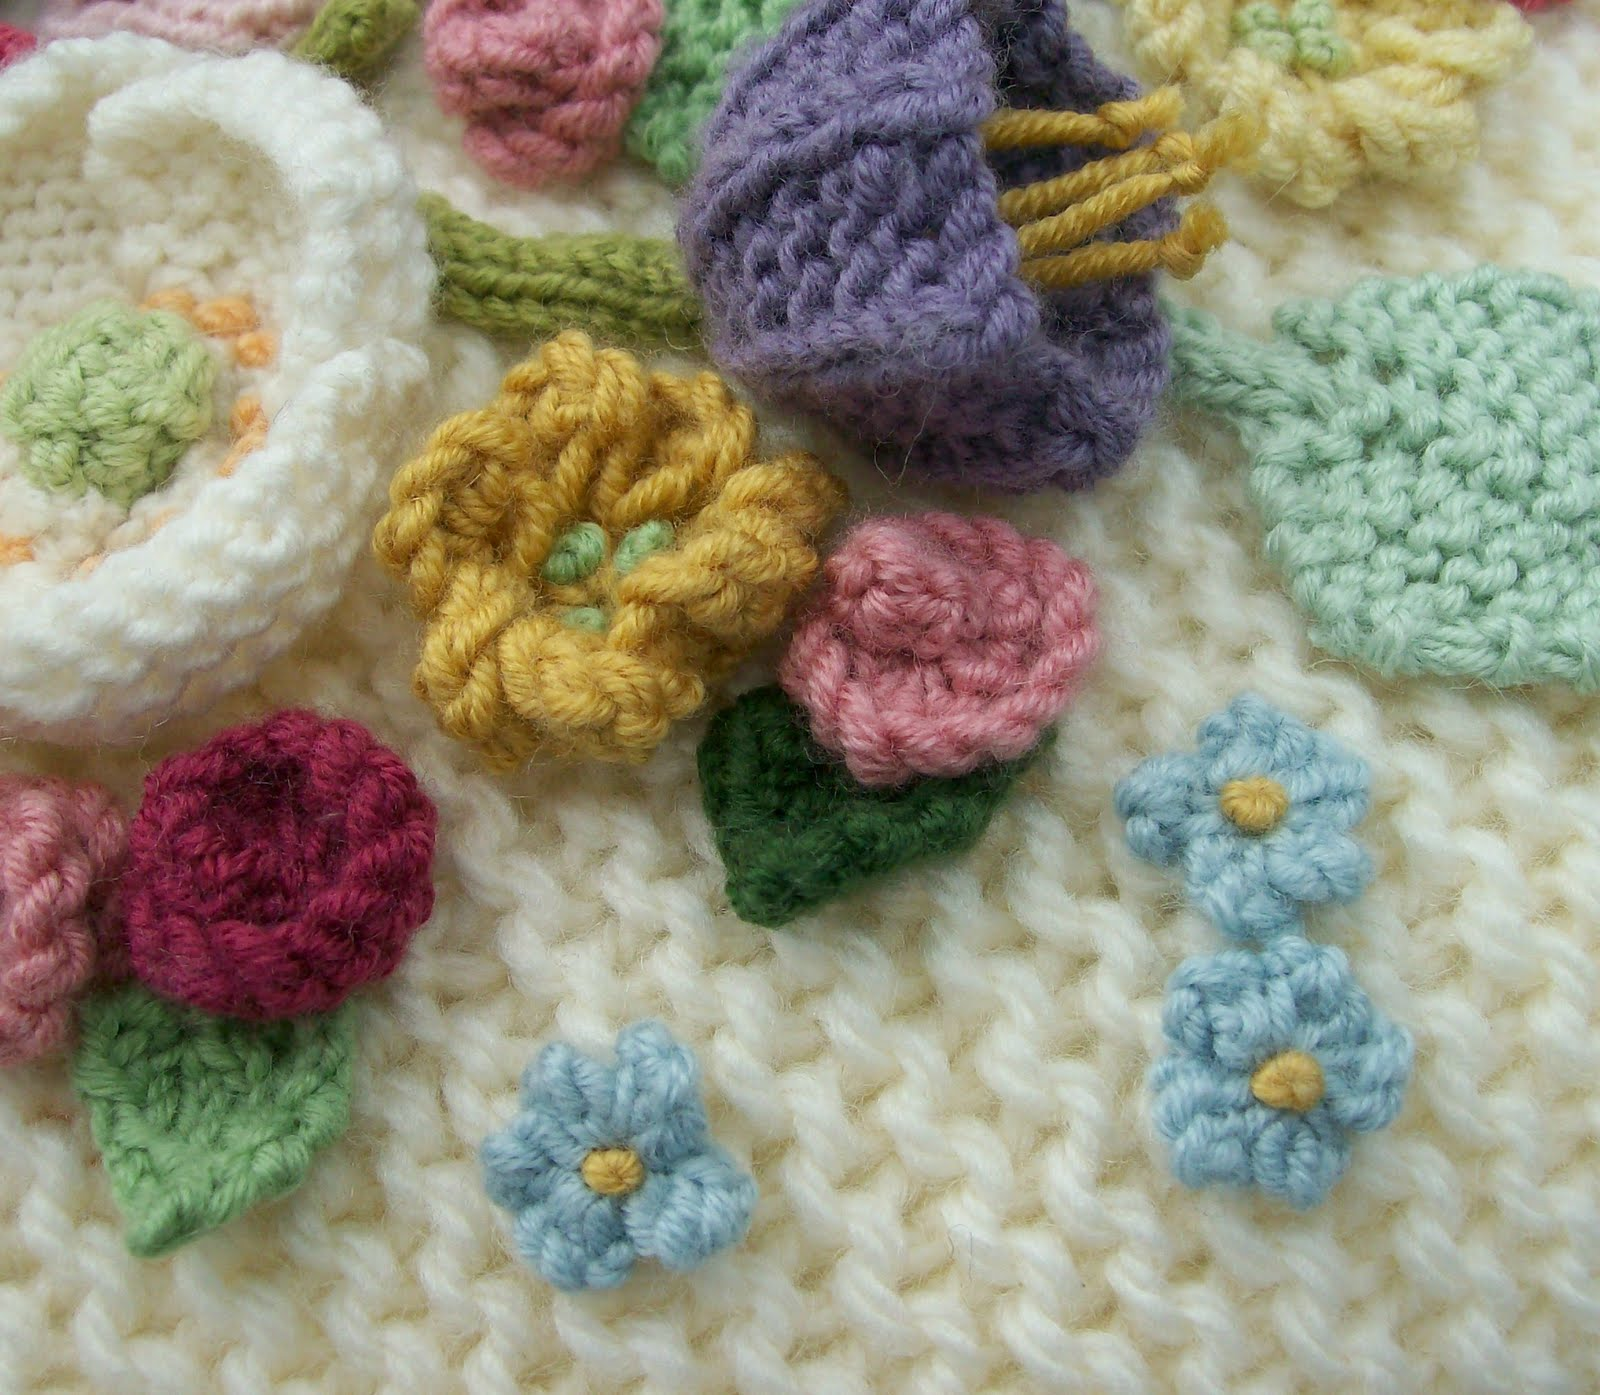 Knot Garden It With Flowers Crochet S Found A Few Patterns This Is How I Made The Tiny Blue On My Posy Cushion